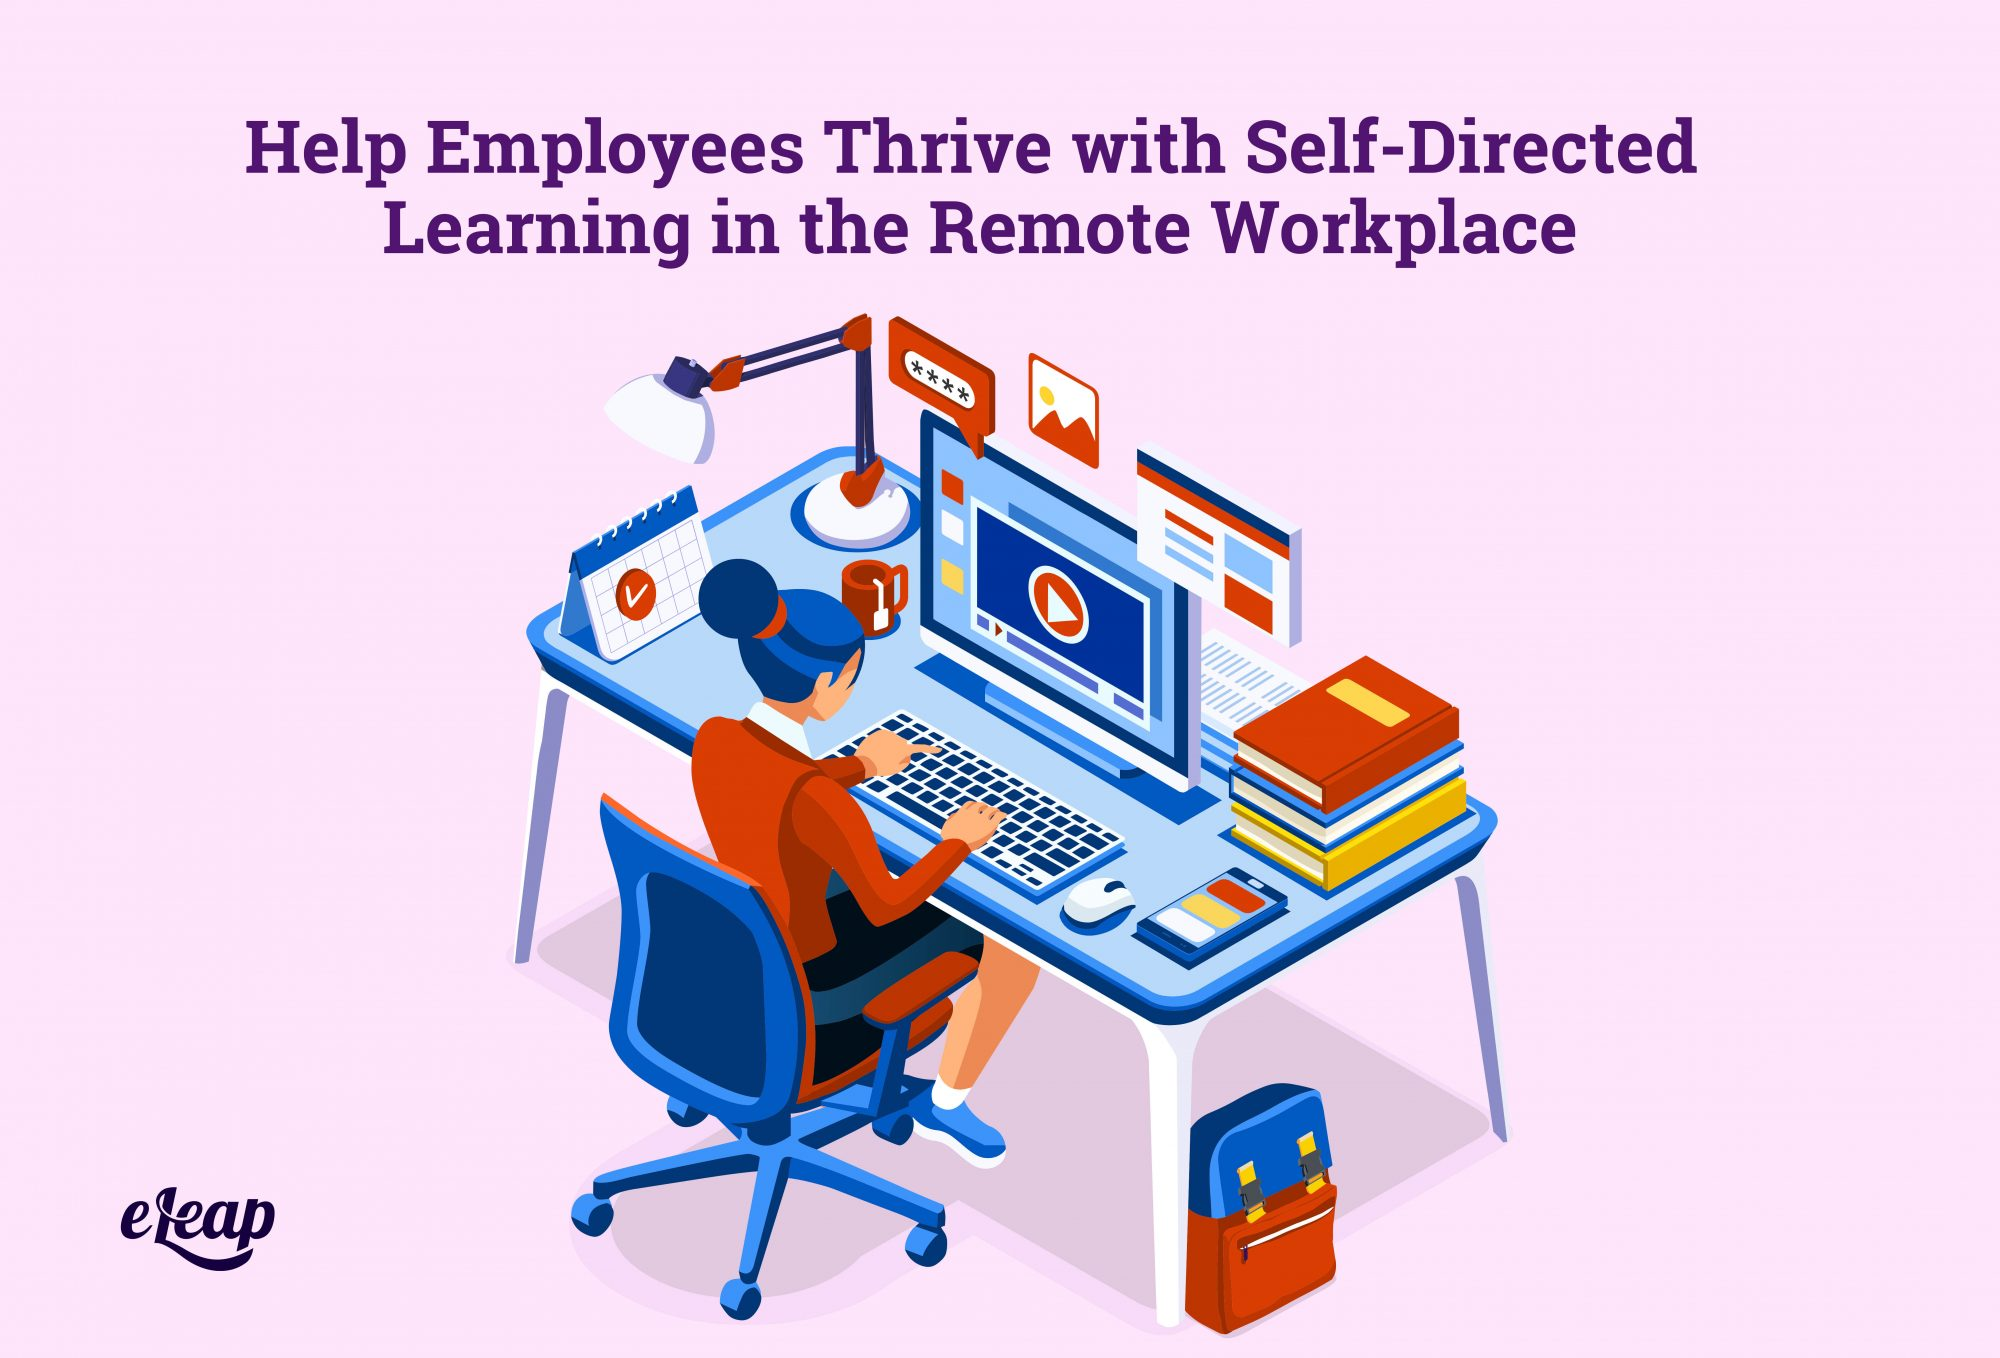 Help Employees Thrive with Self-Directed Learning in the Remote Workplace